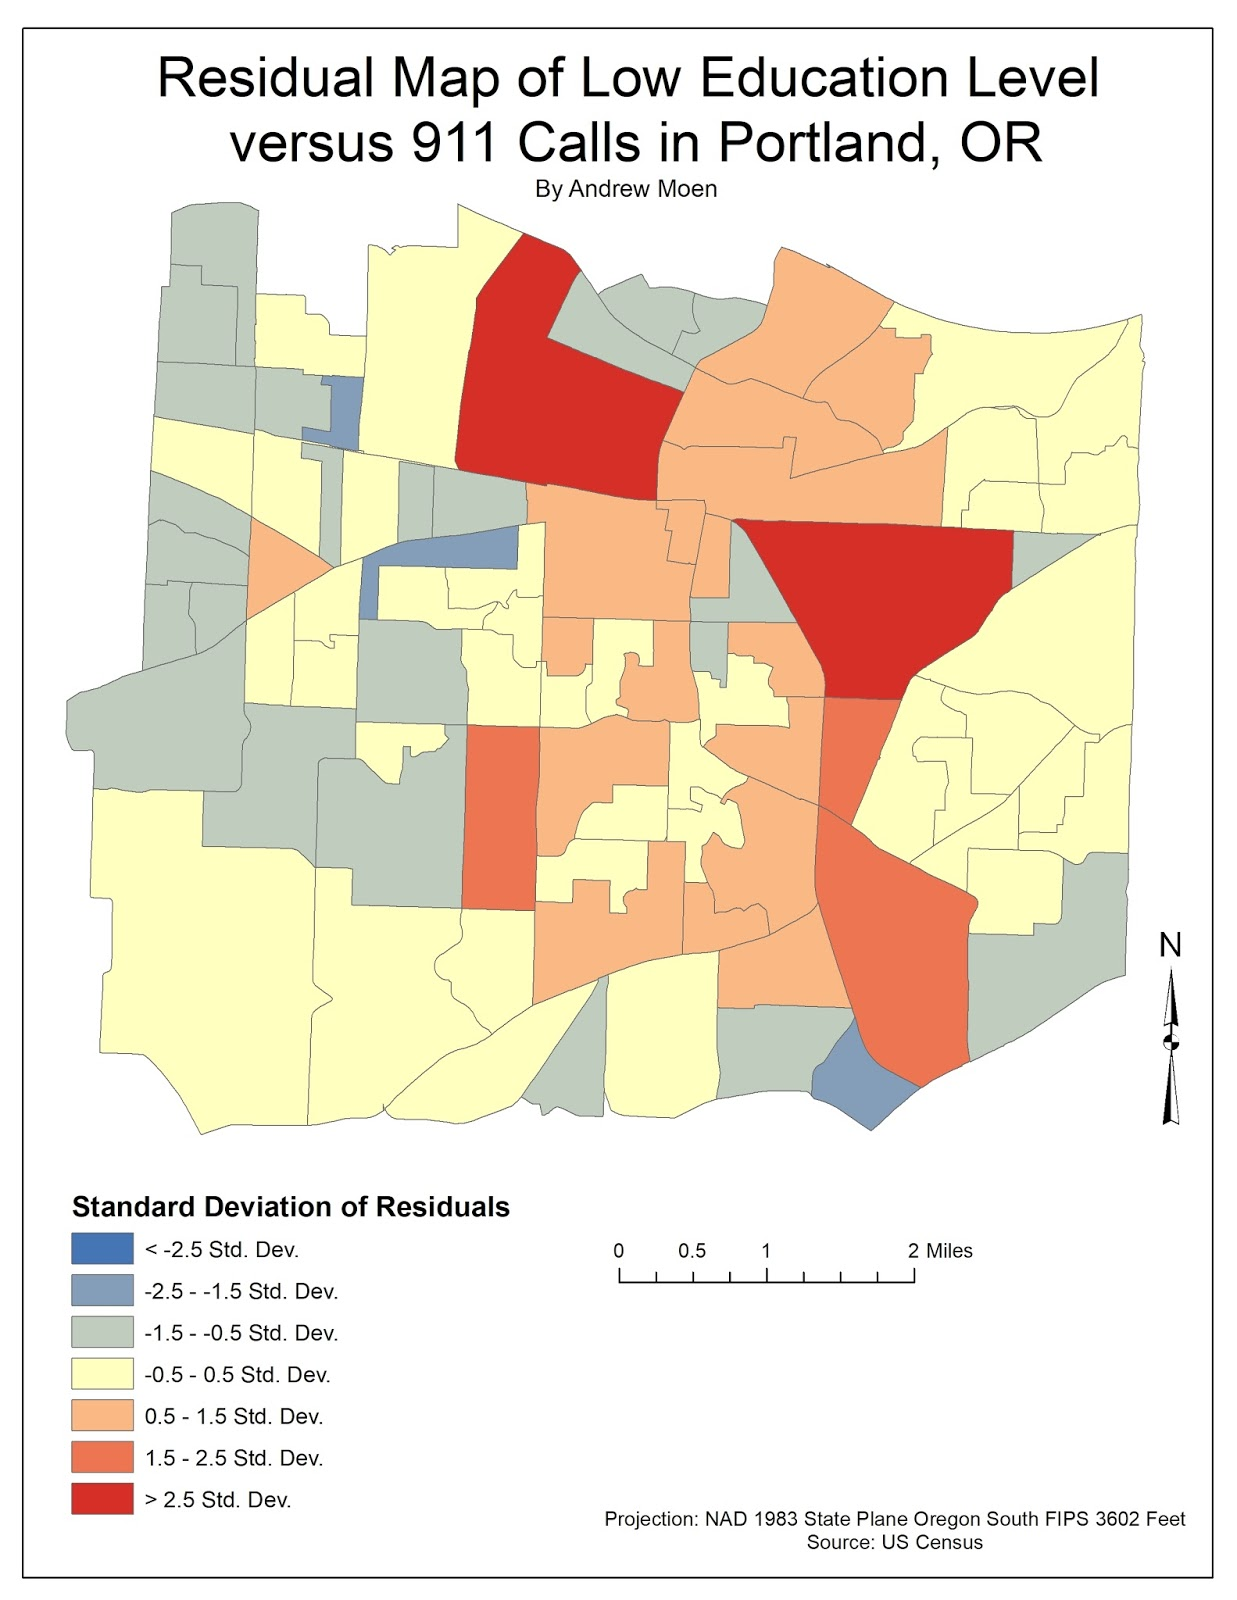 figure 10 residual map of low education levels versus number of 911 calls